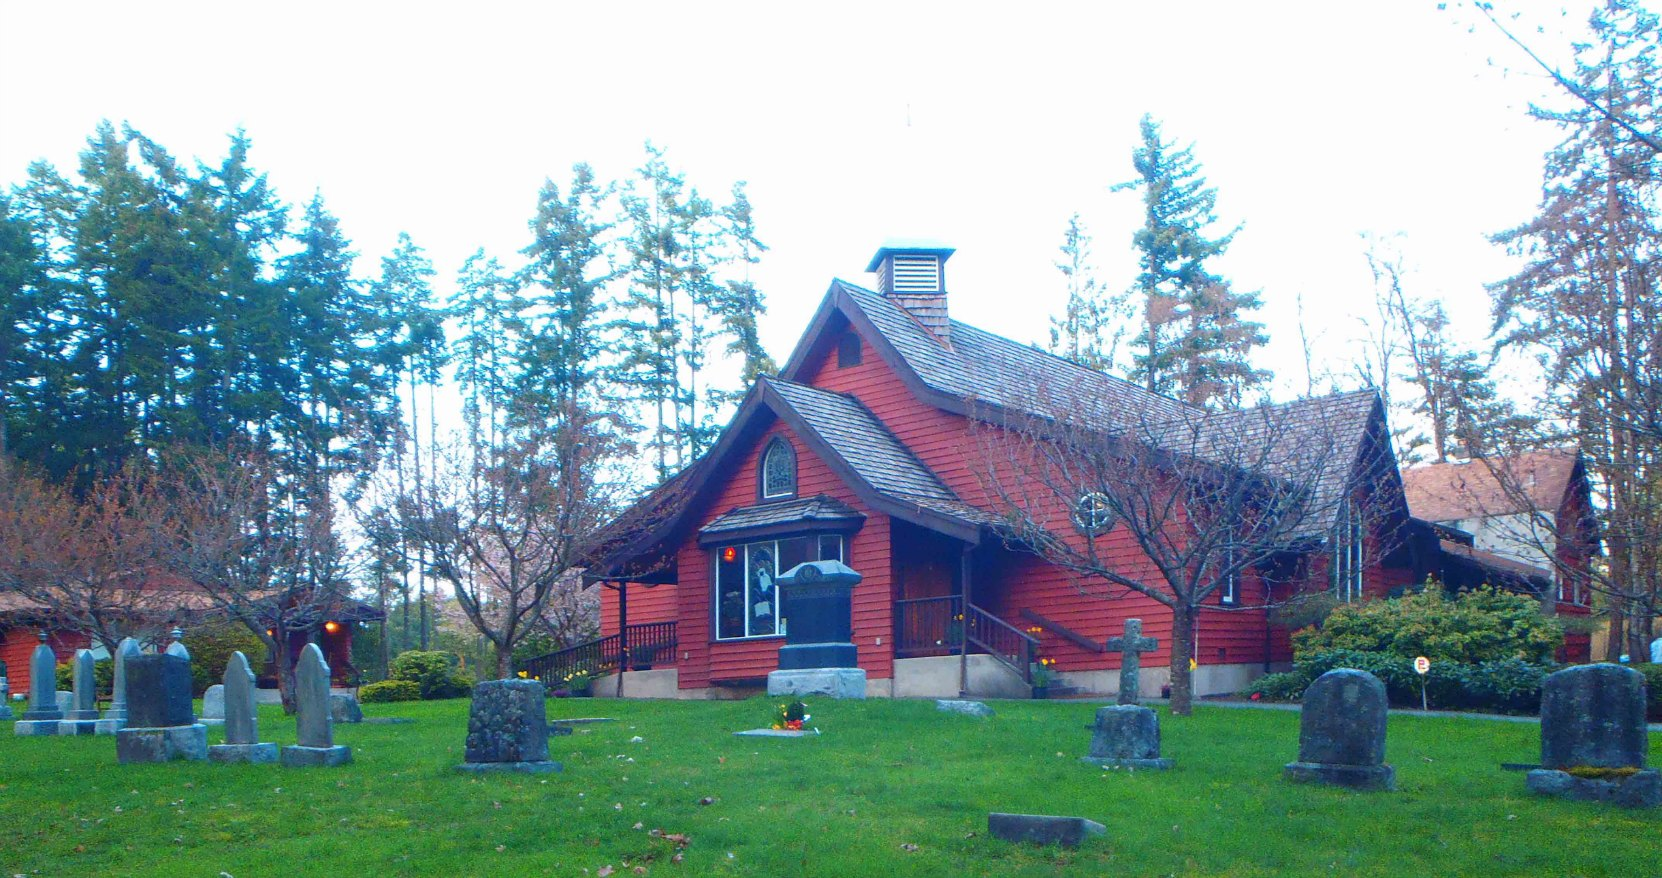 St. John the Baptist Anglican Church, Cobble Hill, B.C.